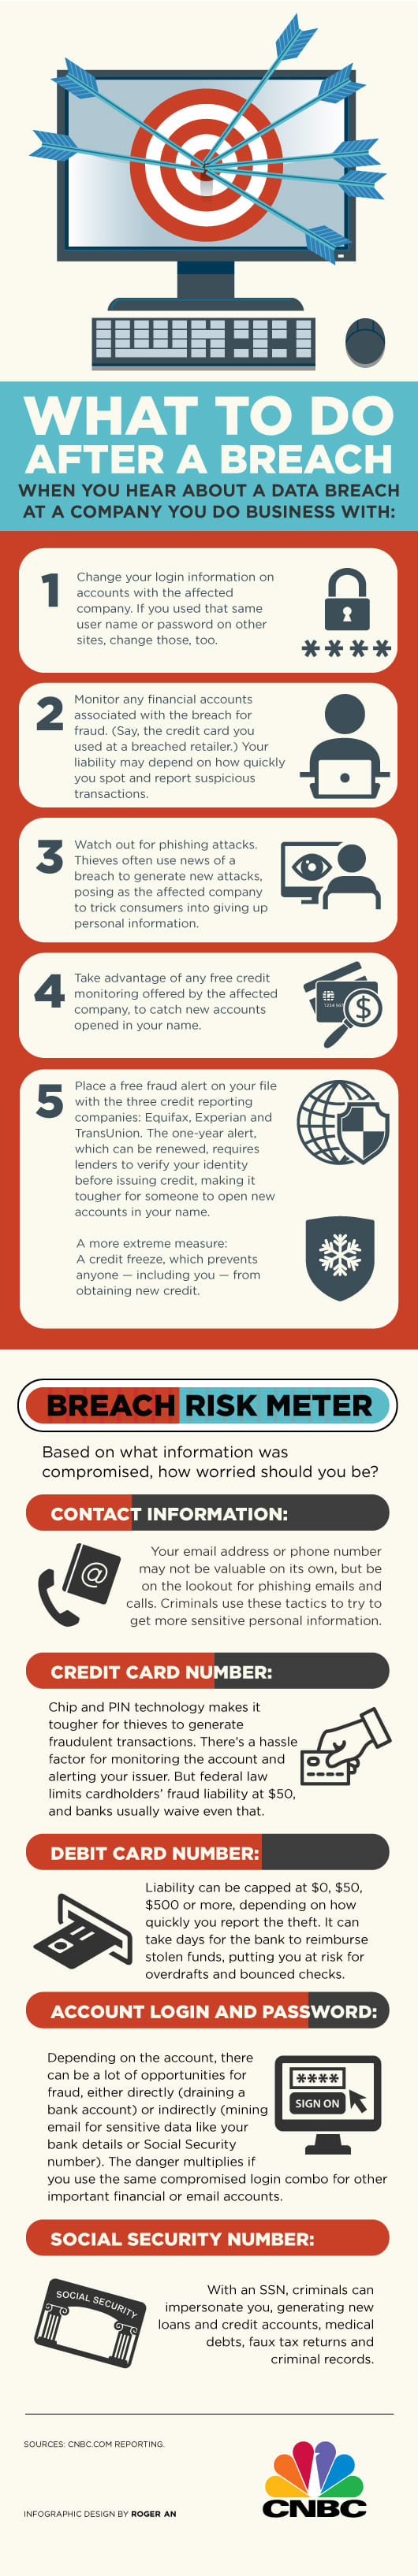 After a data breach infographic